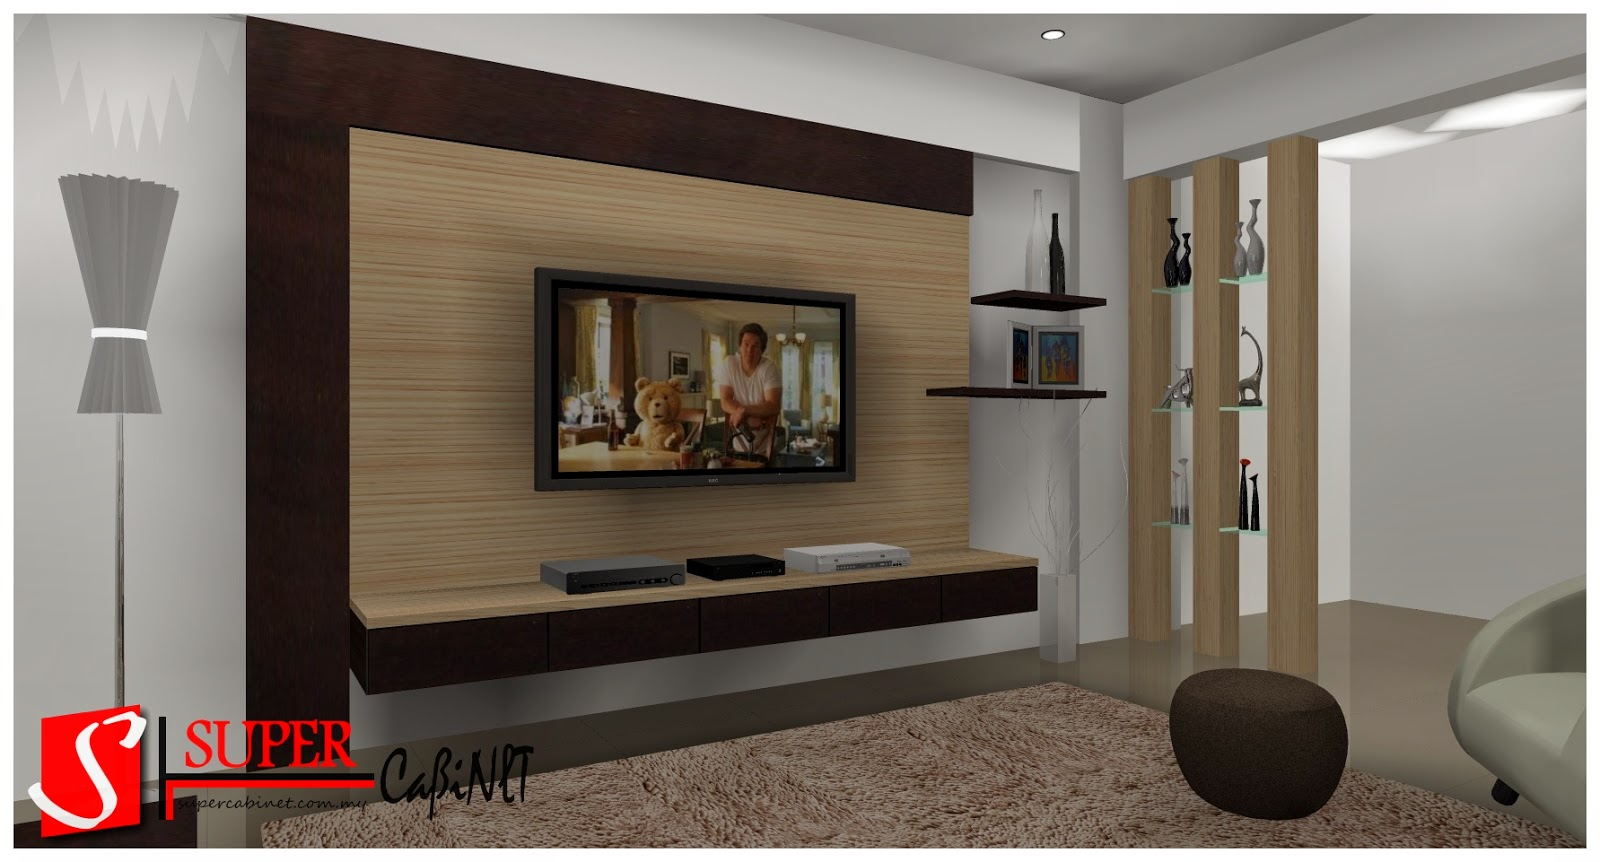 sharing the design super cabinet sdn bhd